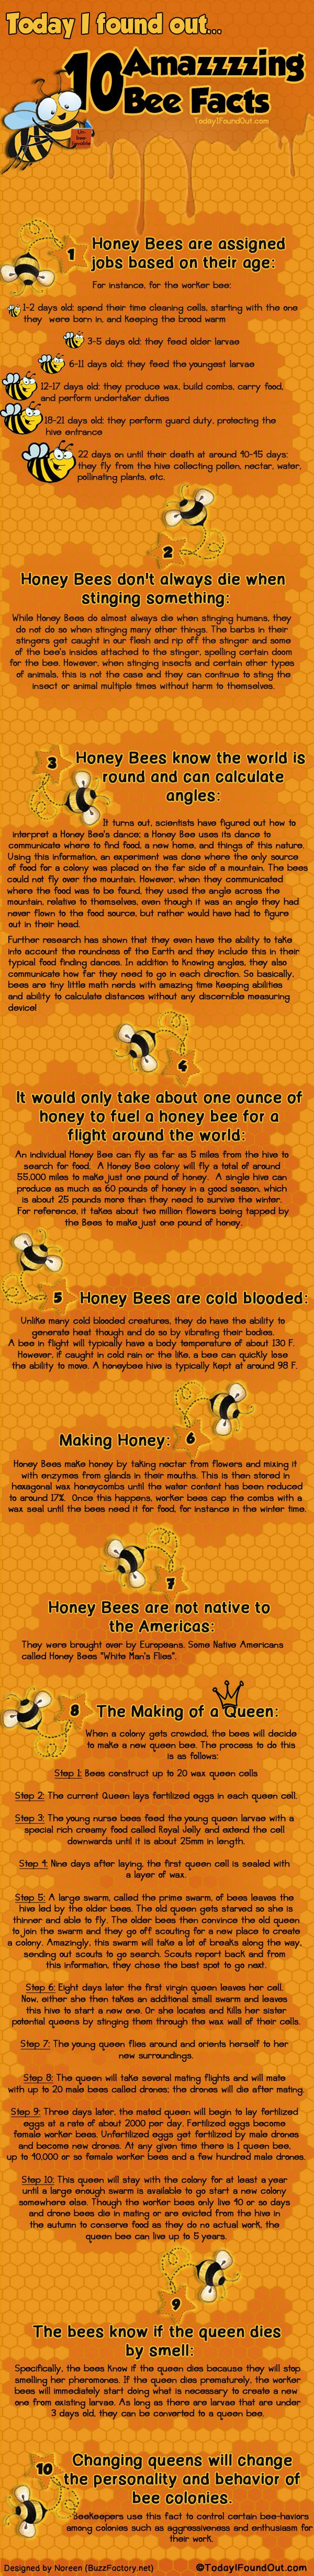 For those who dont know, bees job are assigned  based on their age. And they dont always die if they have stinged something. Honey bees, are also smart, they know […]